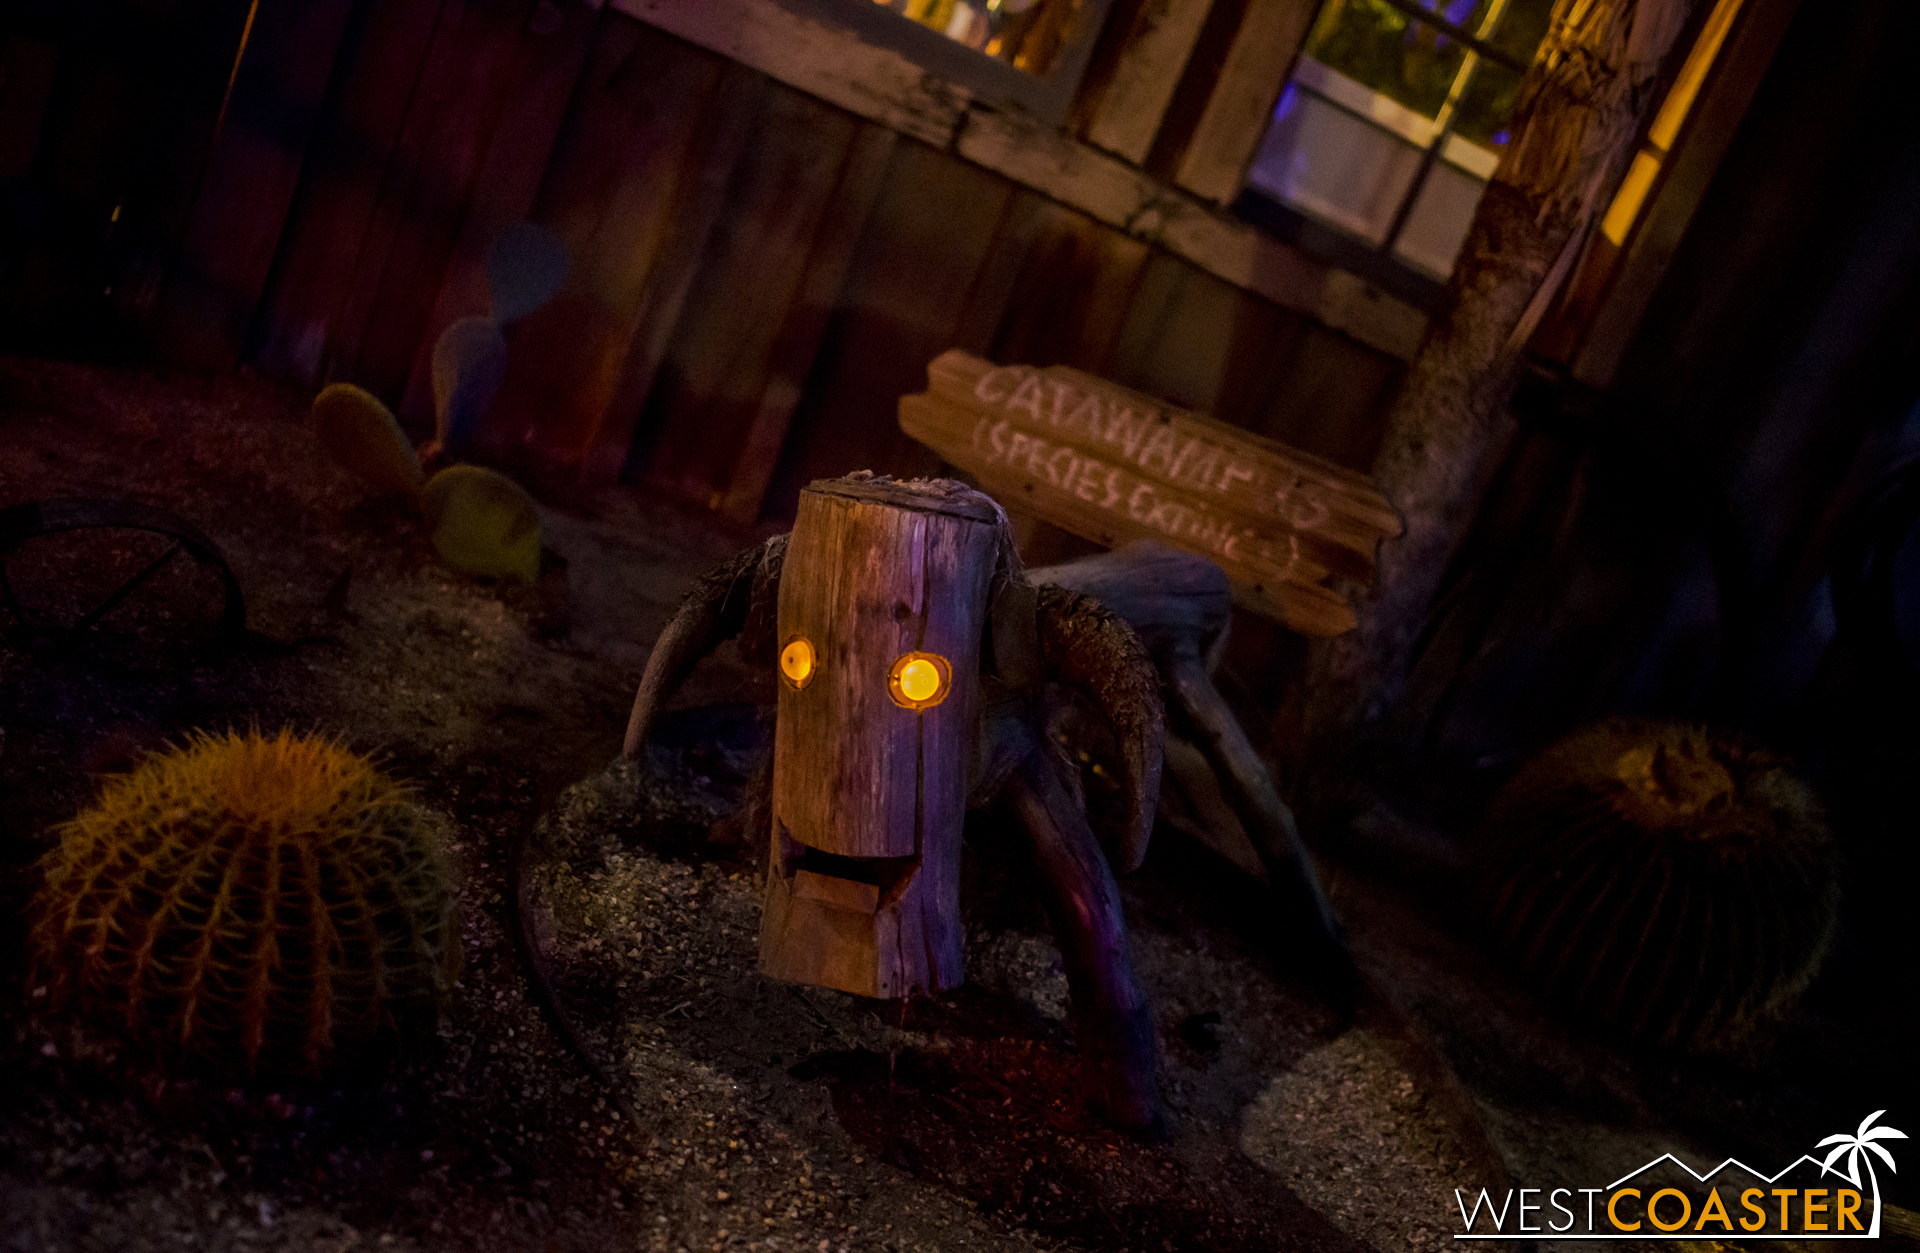 Spookywampus can't wait to moo guests into frightful terror when the Veil returns this fall!